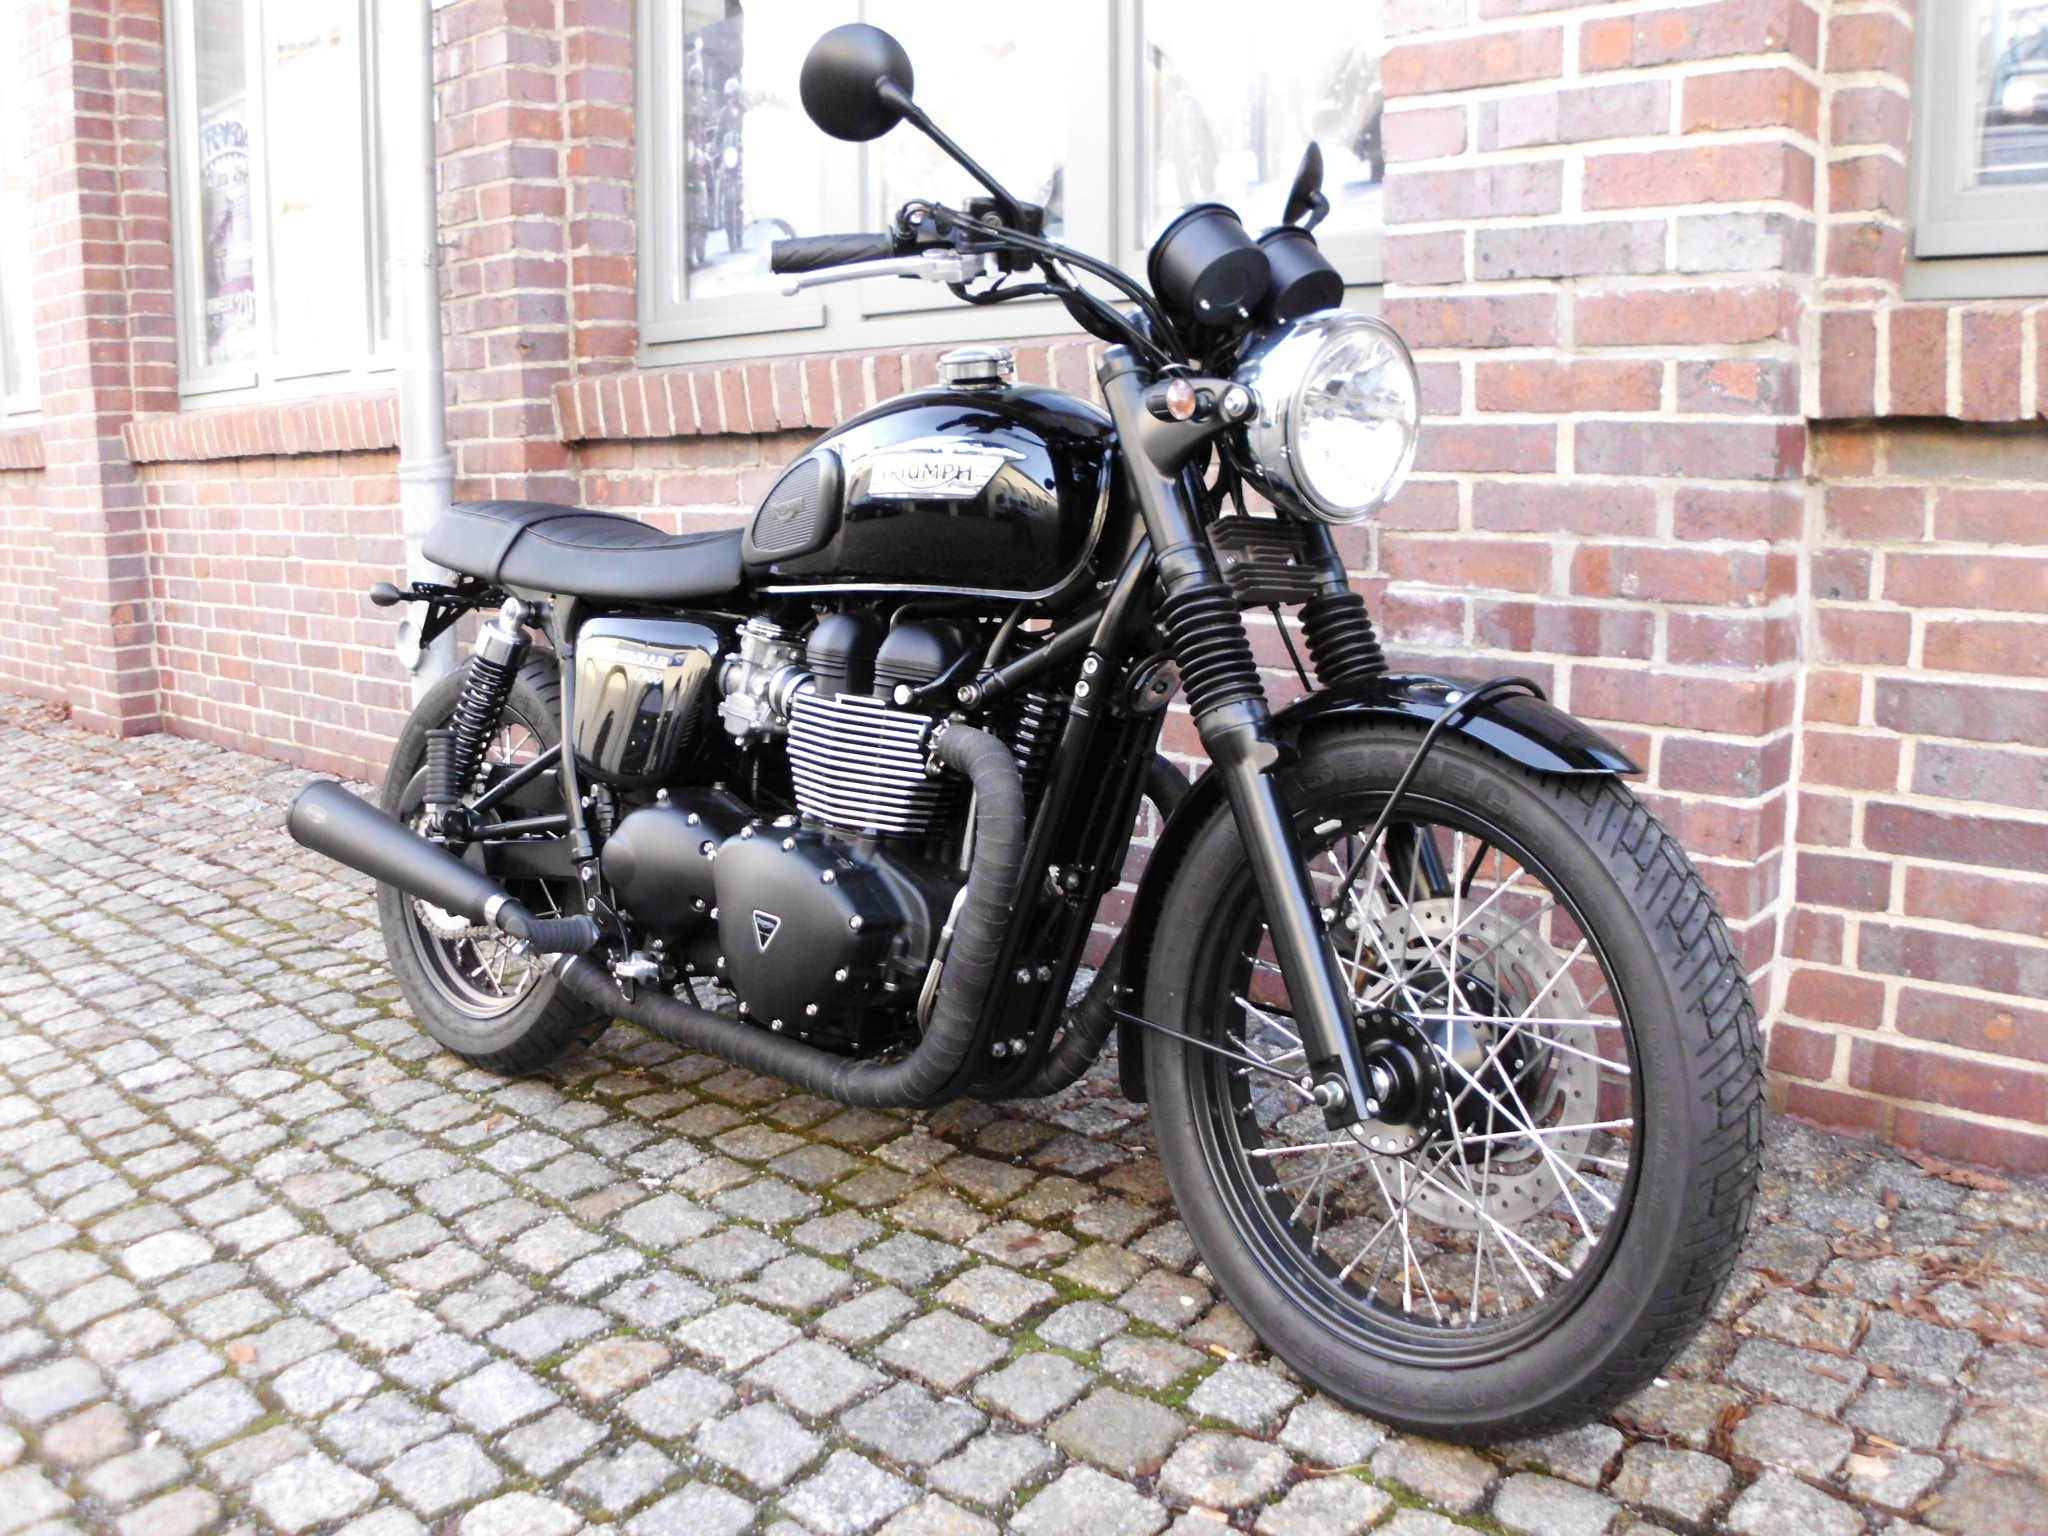 umgebautes motorrad triumph bonneville t100 black von kehl klingenberger gbr. Black Bedroom Furniture Sets. Home Design Ideas